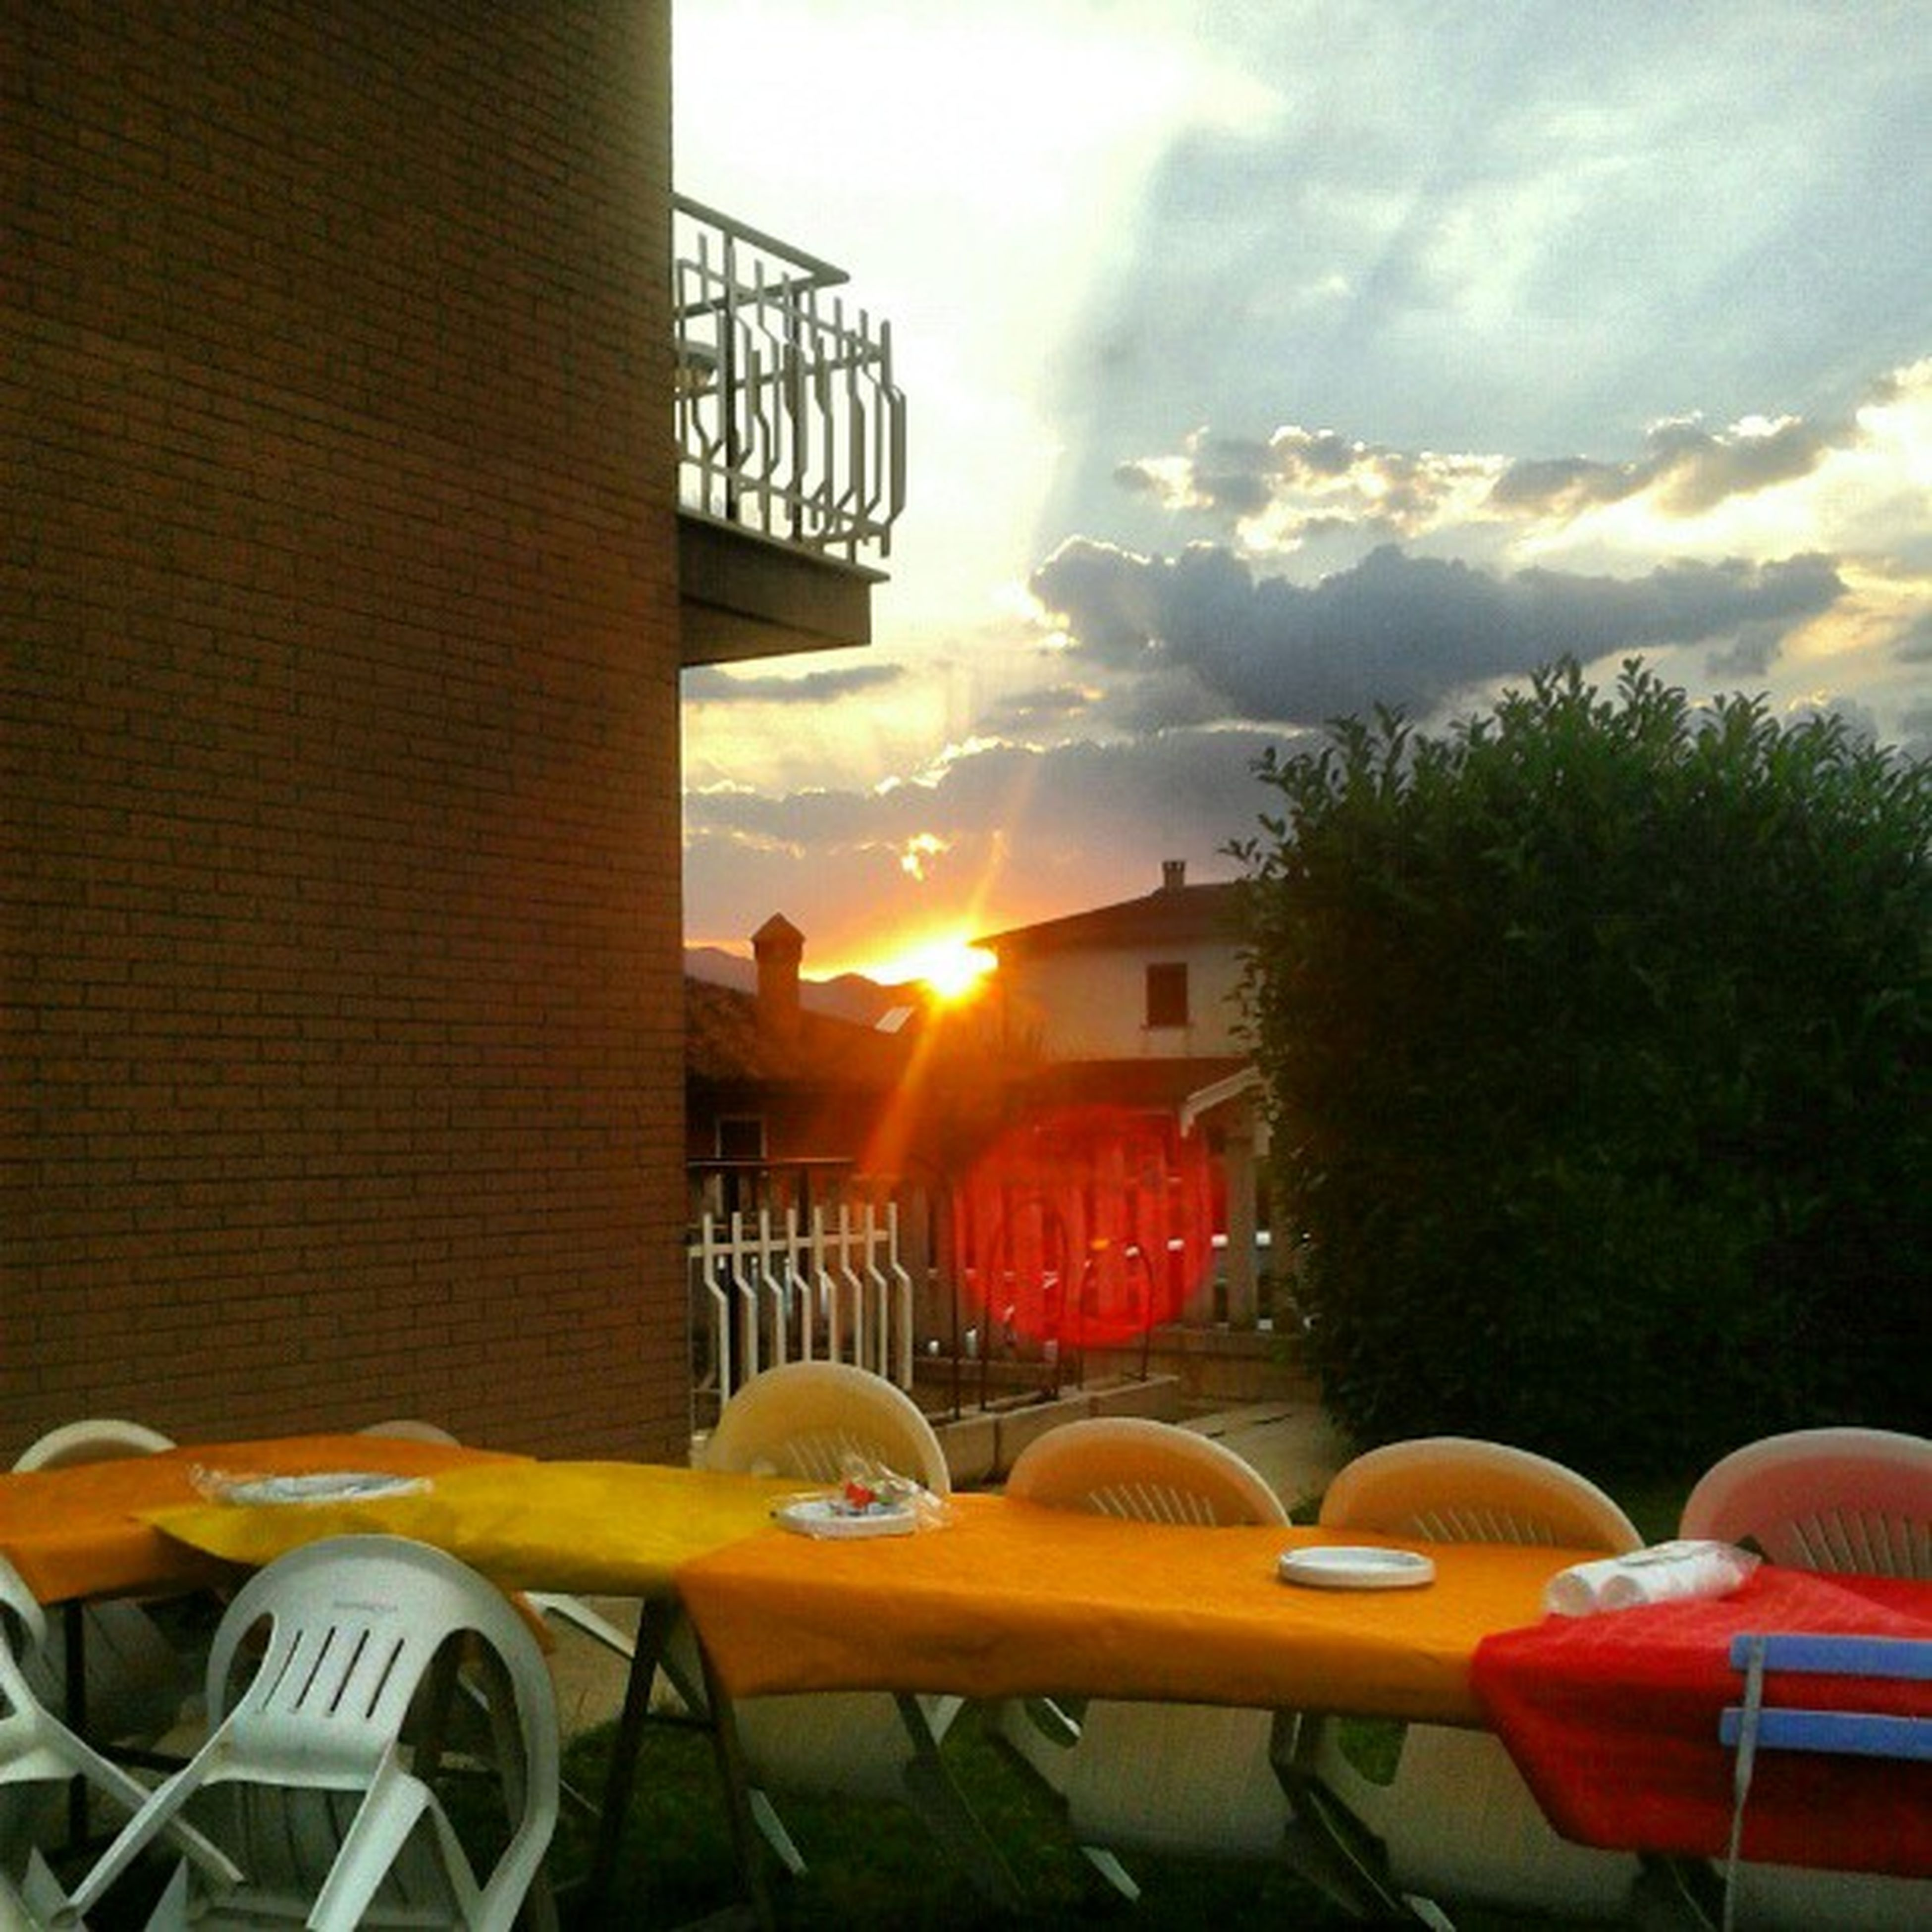 sunset, sky, architecture, built structure, building exterior, orange color, cloud - sky, sun, sunlight, chair, cloud, tree, house, nature, residential structure, outdoors, no people, railing, residential building, balcony